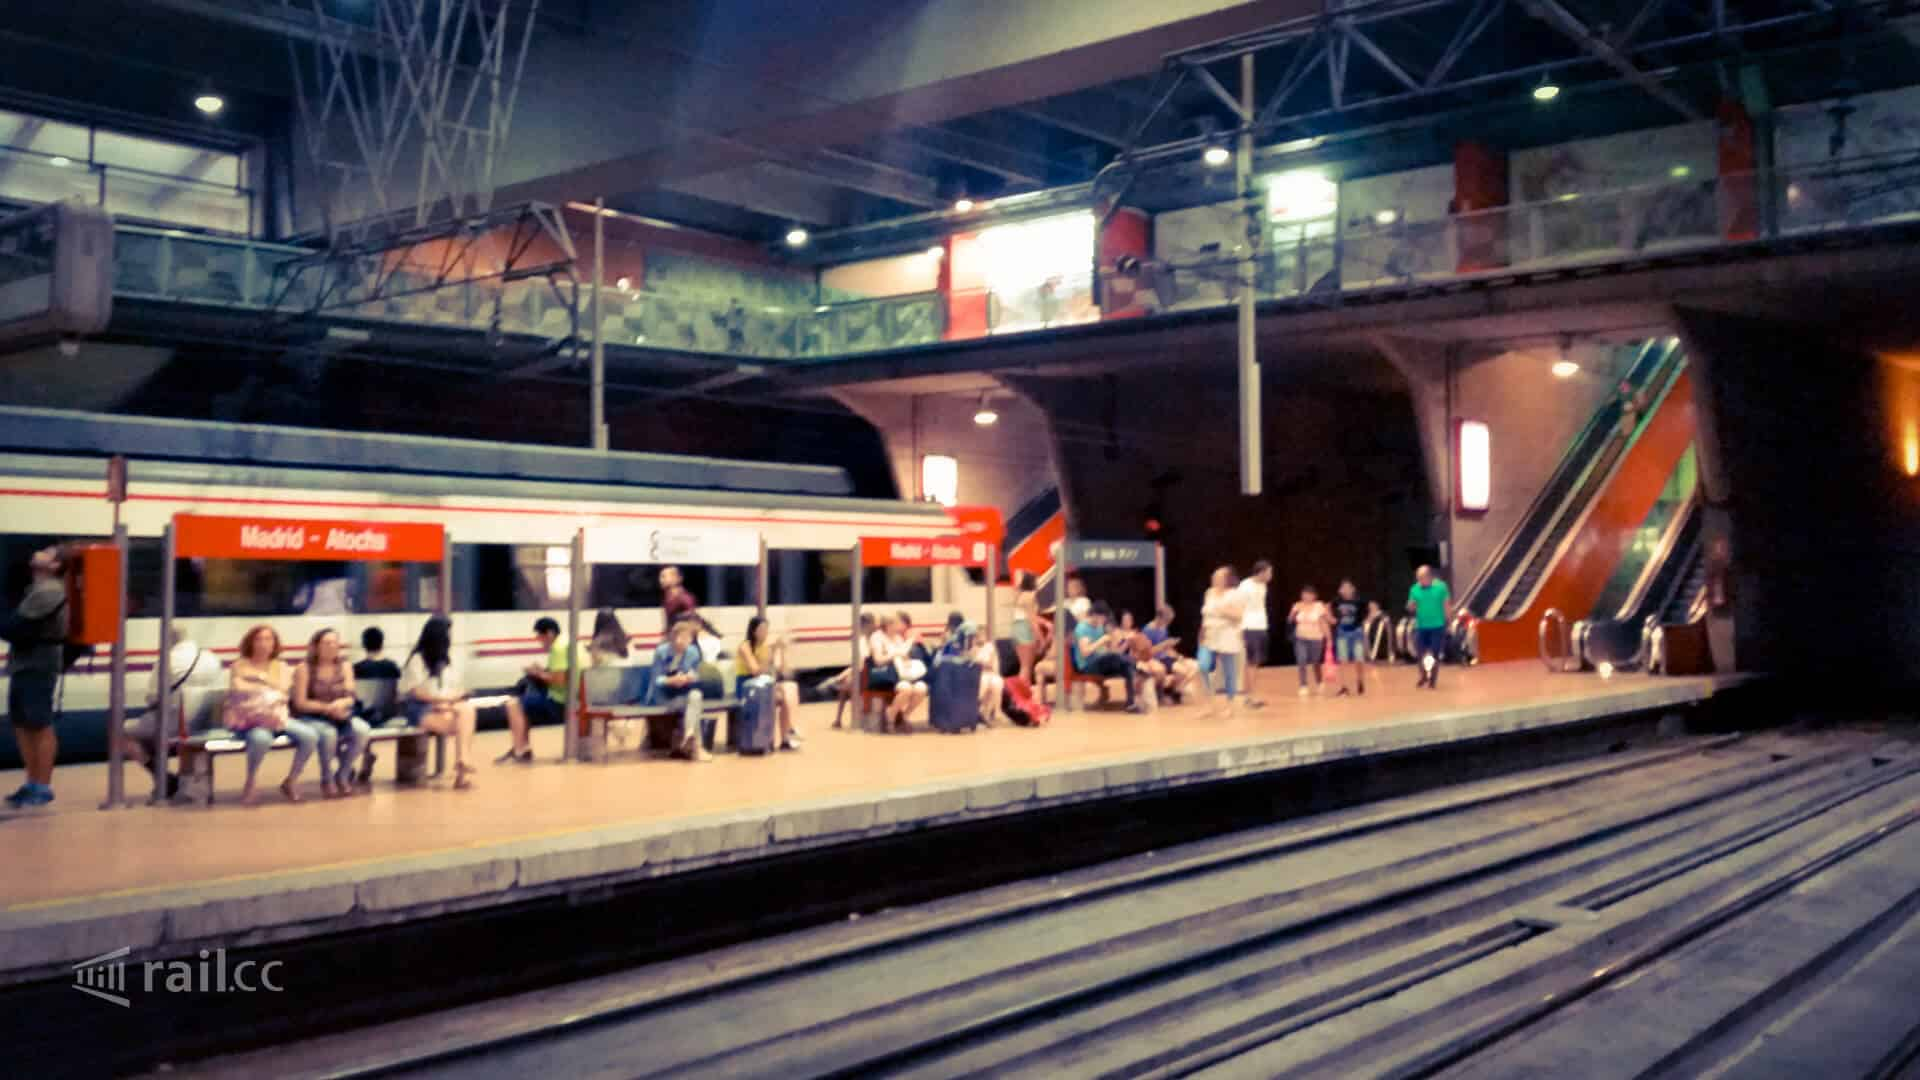 The Cercanias train stop station in Madrid-Atocha